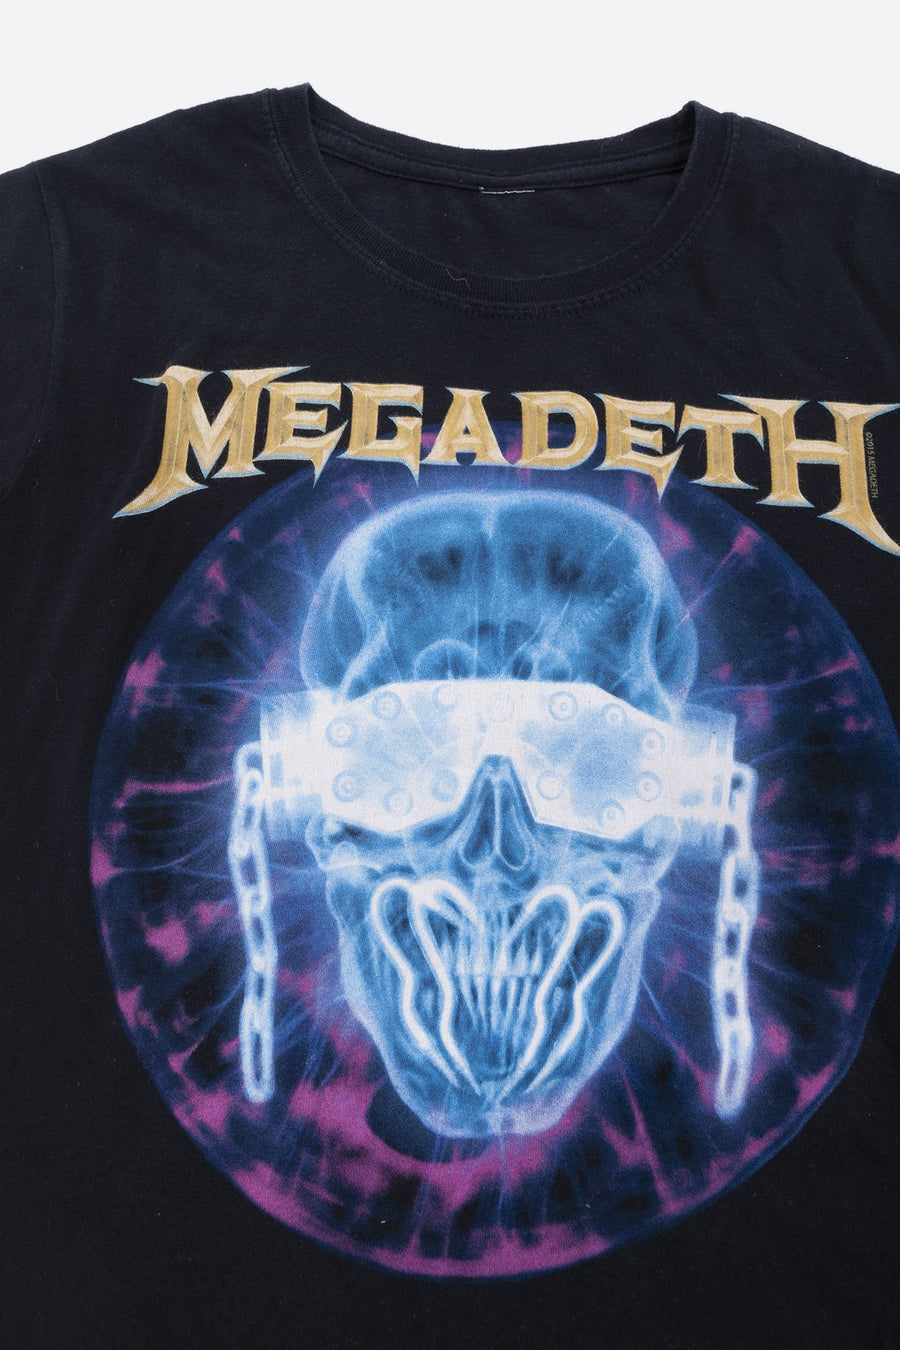 T-shirt Megadeath - WASTED PARIS